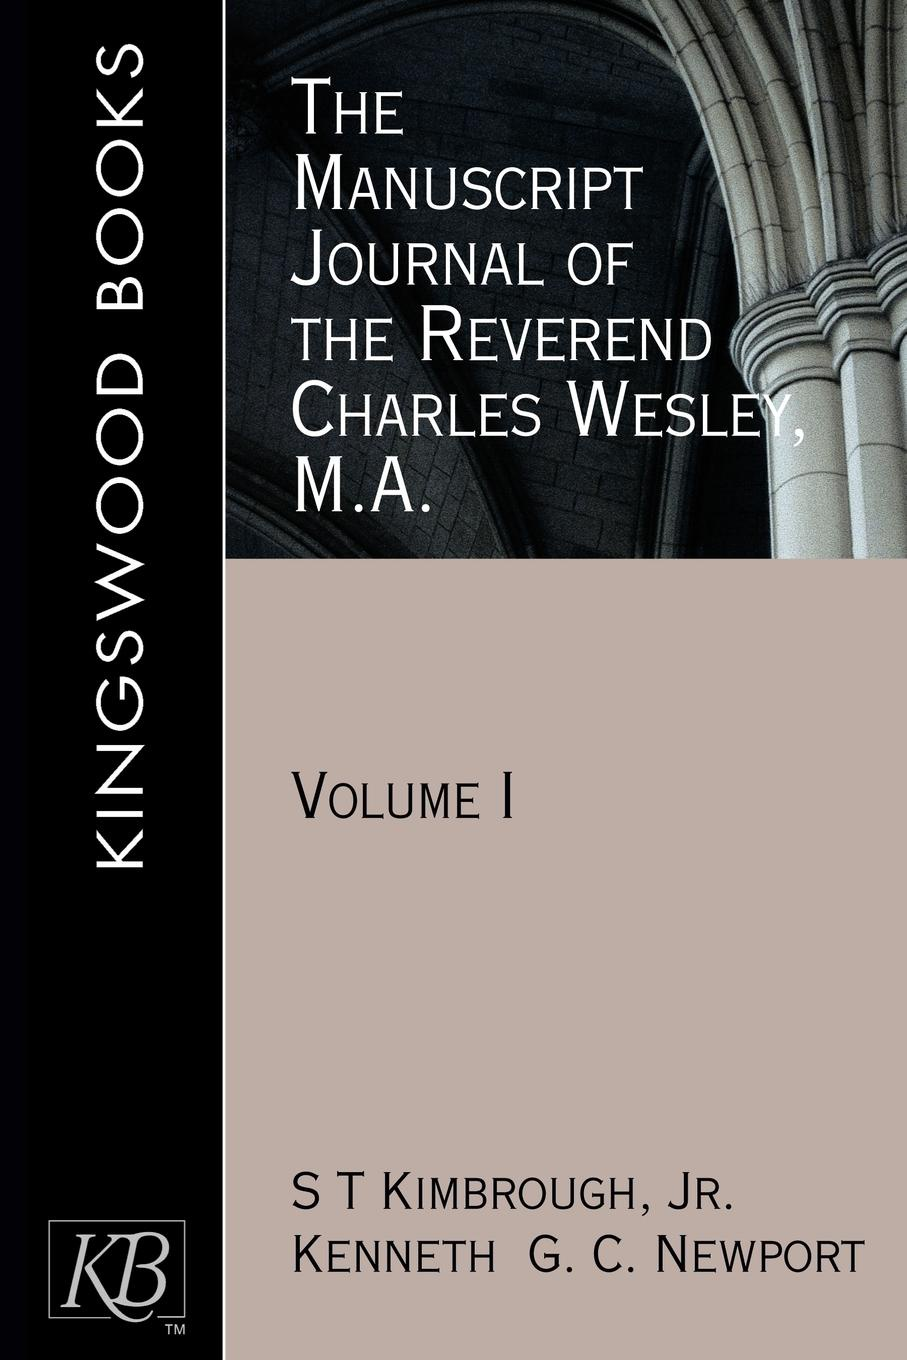 Charles Wesley, S. T. Jr. Kimbrough, Kenneth G. C. Newport The Manuscript Journal of the Reverend Charles Wesley, M.A.,. Volume 1 love christopher charles scriptural latin plays of the renaissance and milton s cambridge manuscript